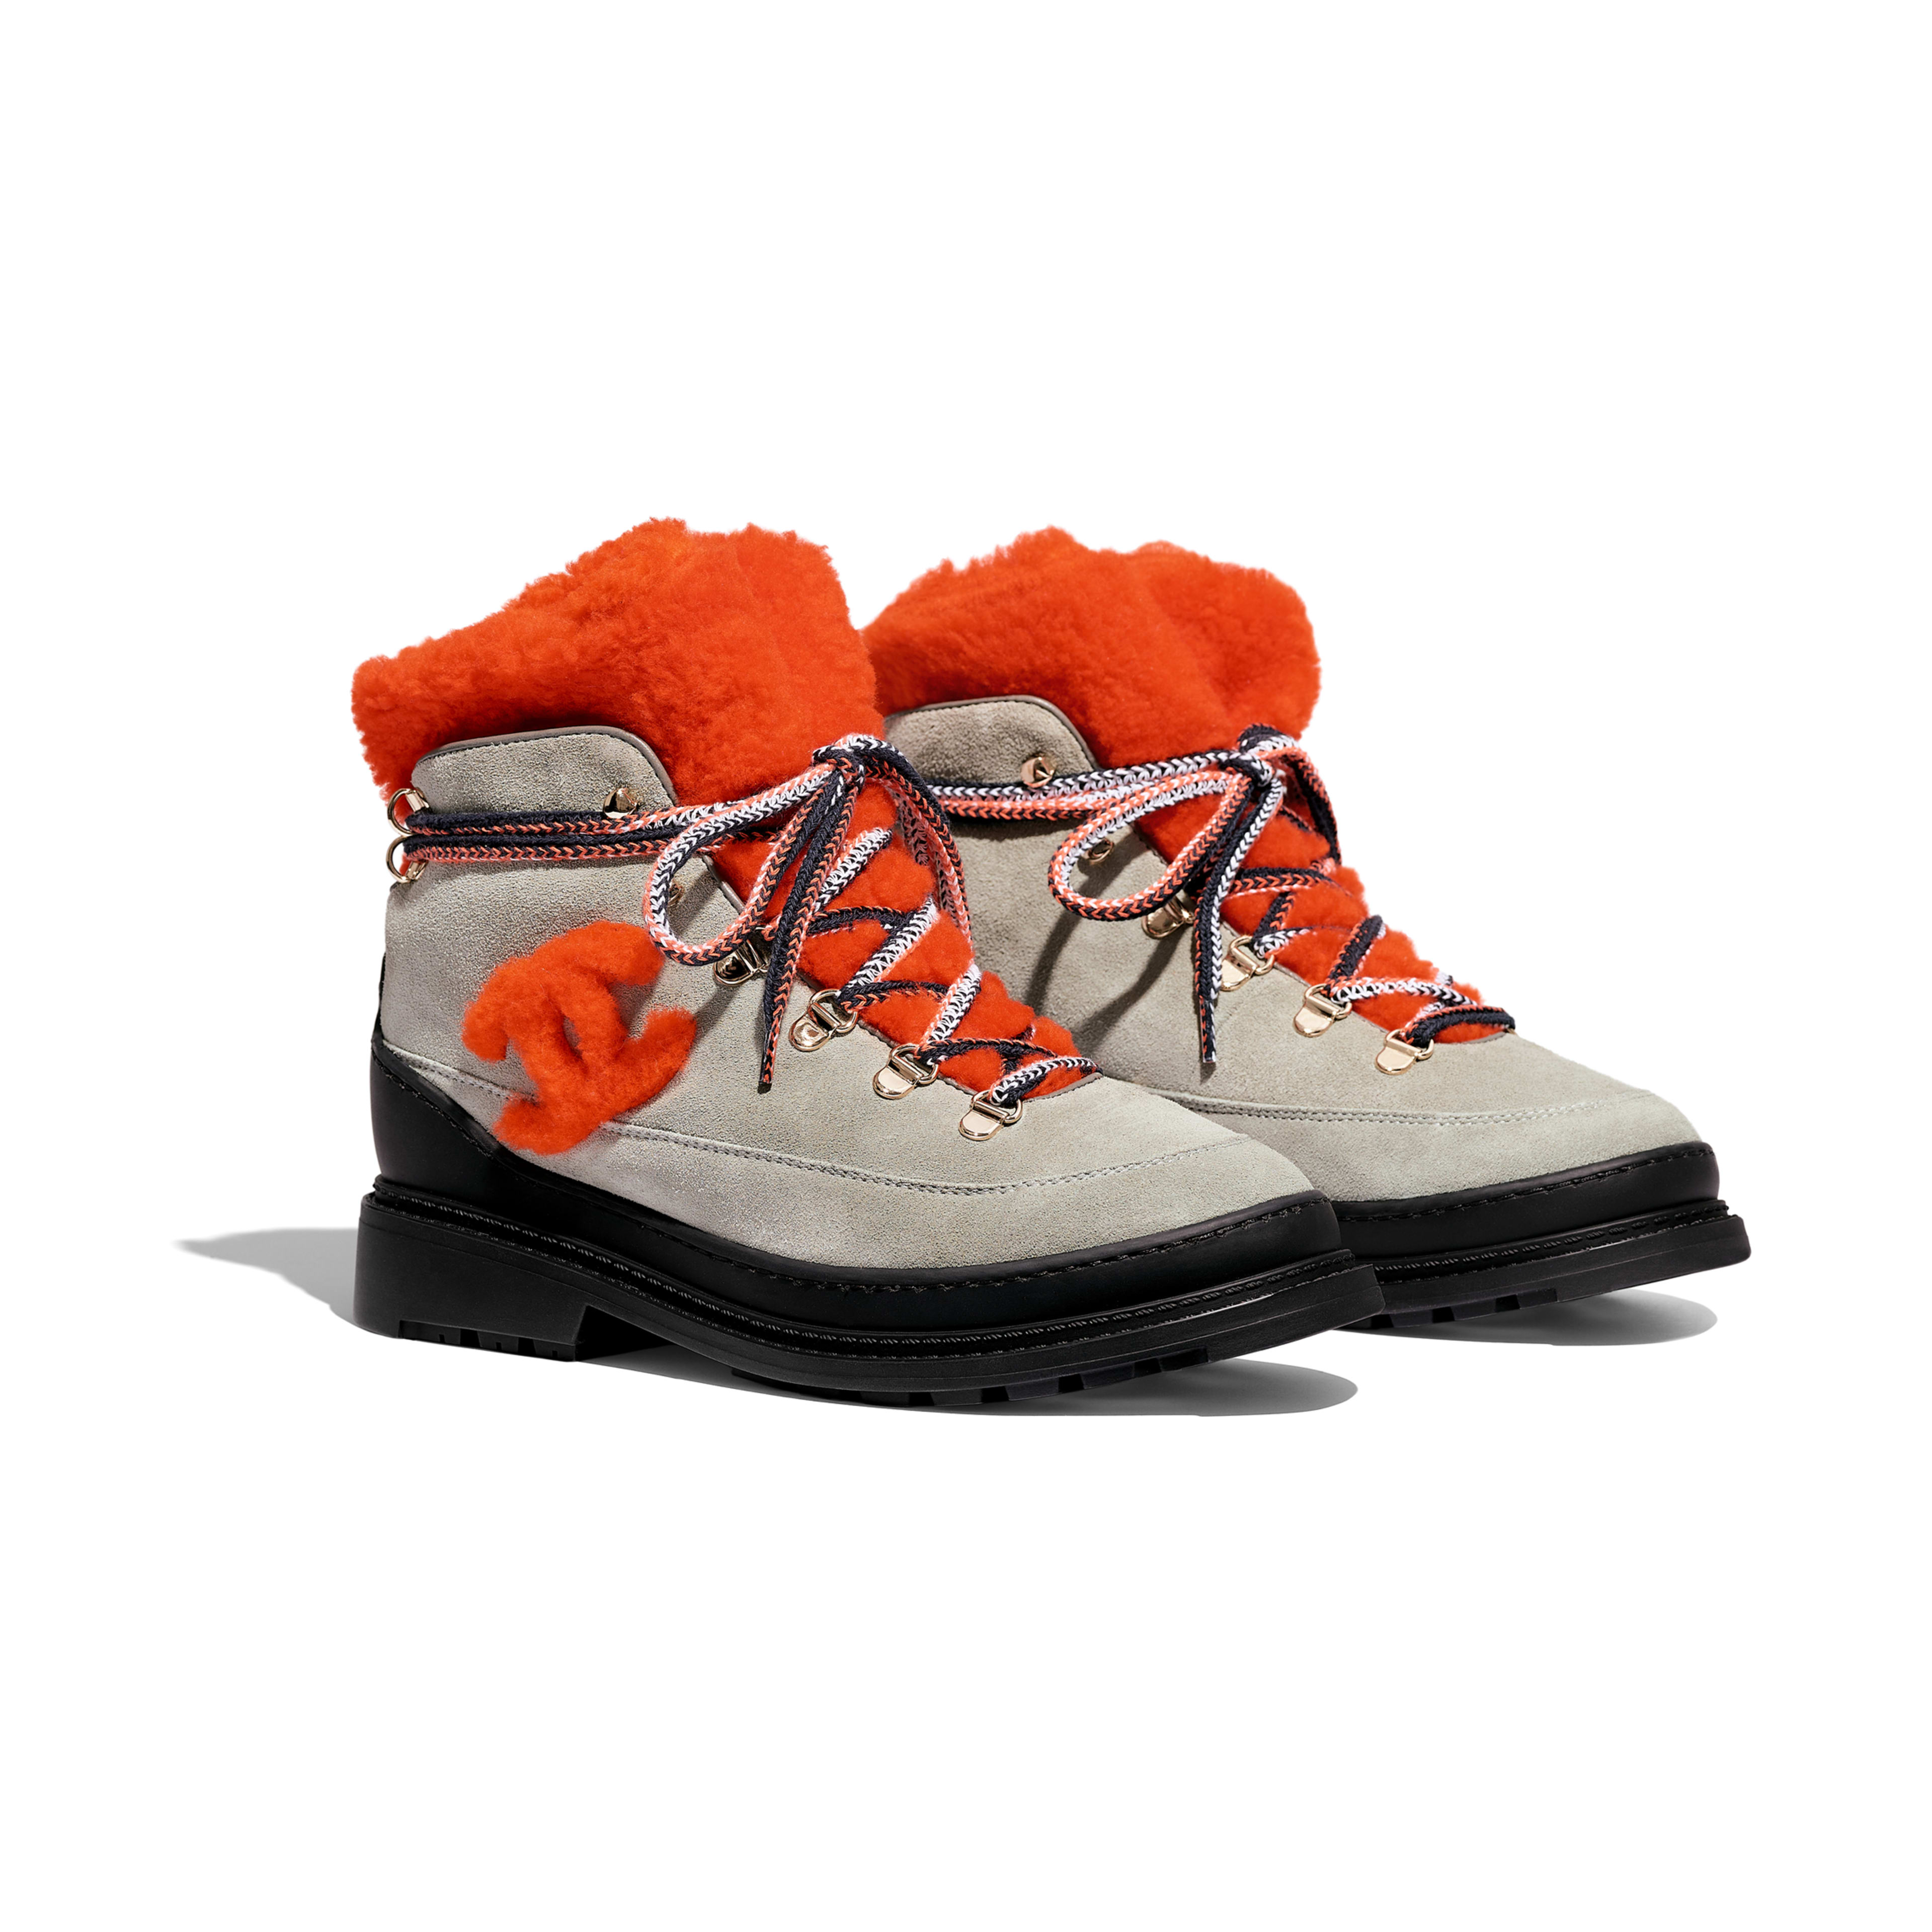 Lace-Ups - Gray & Orange - Suede Calfskin & Shearling - Alternative view - see full sized version